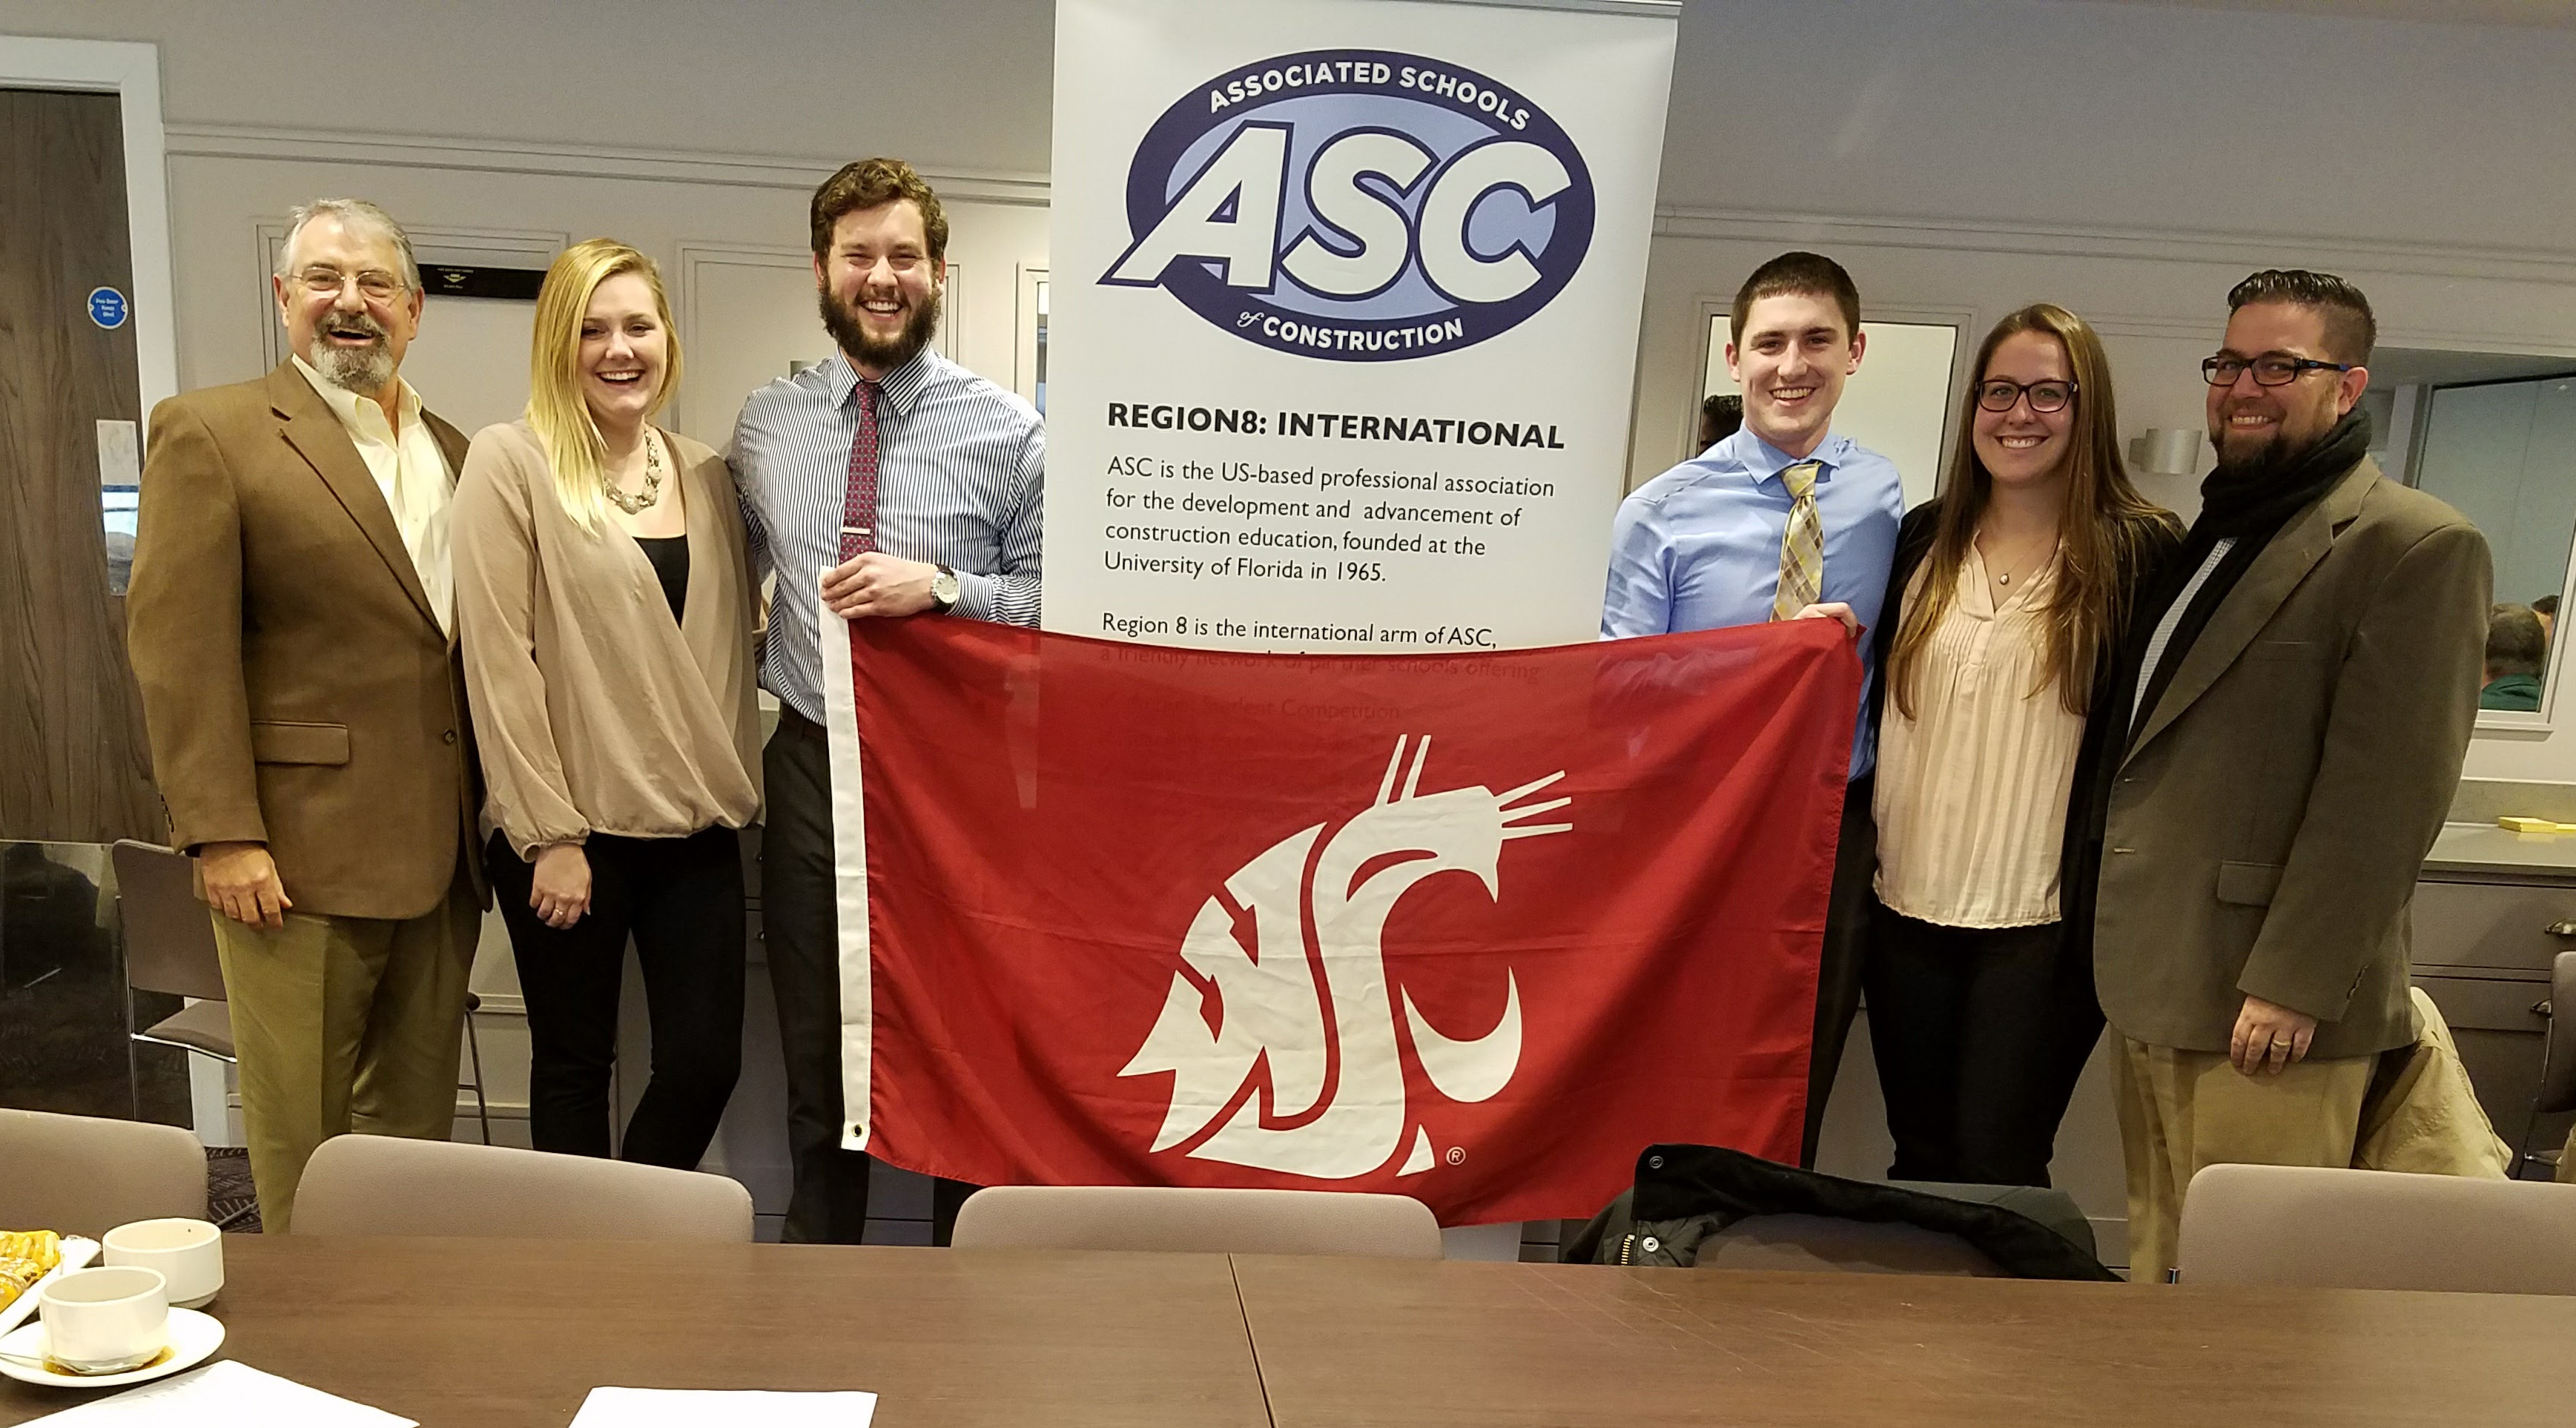 Jason Peschel and Dr. David Gunderson with four students, holding the WSU flag. Students were participating in the ASC Regional Competition.